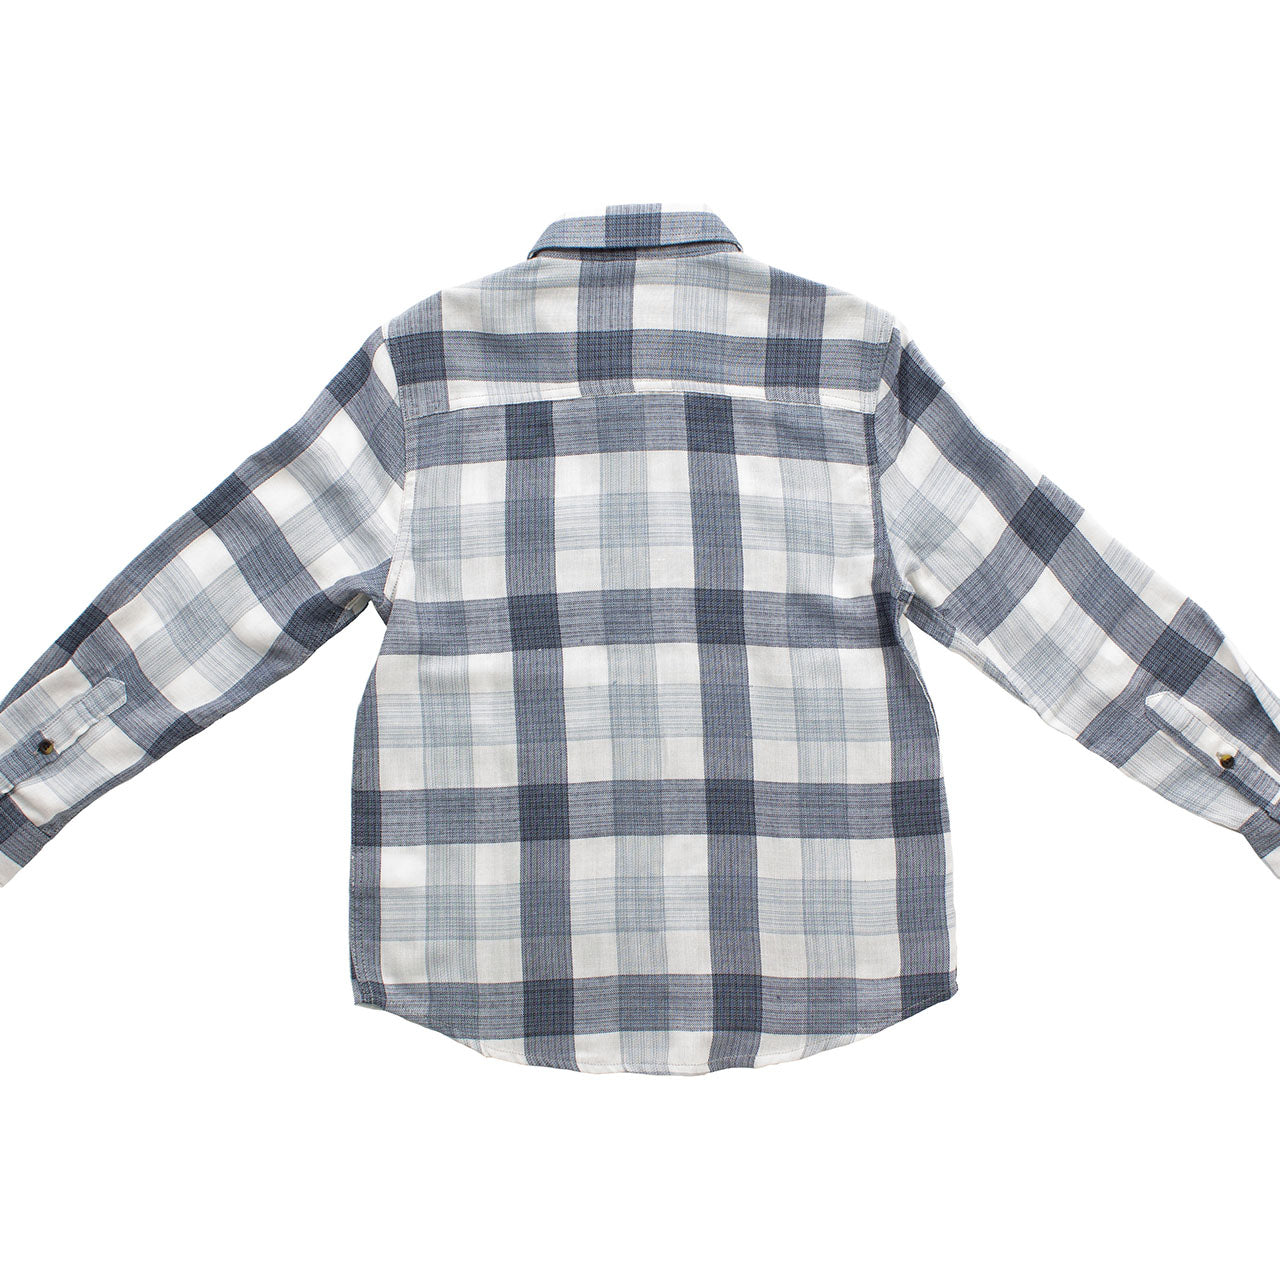 Ronan Plaid Shirt Toddler